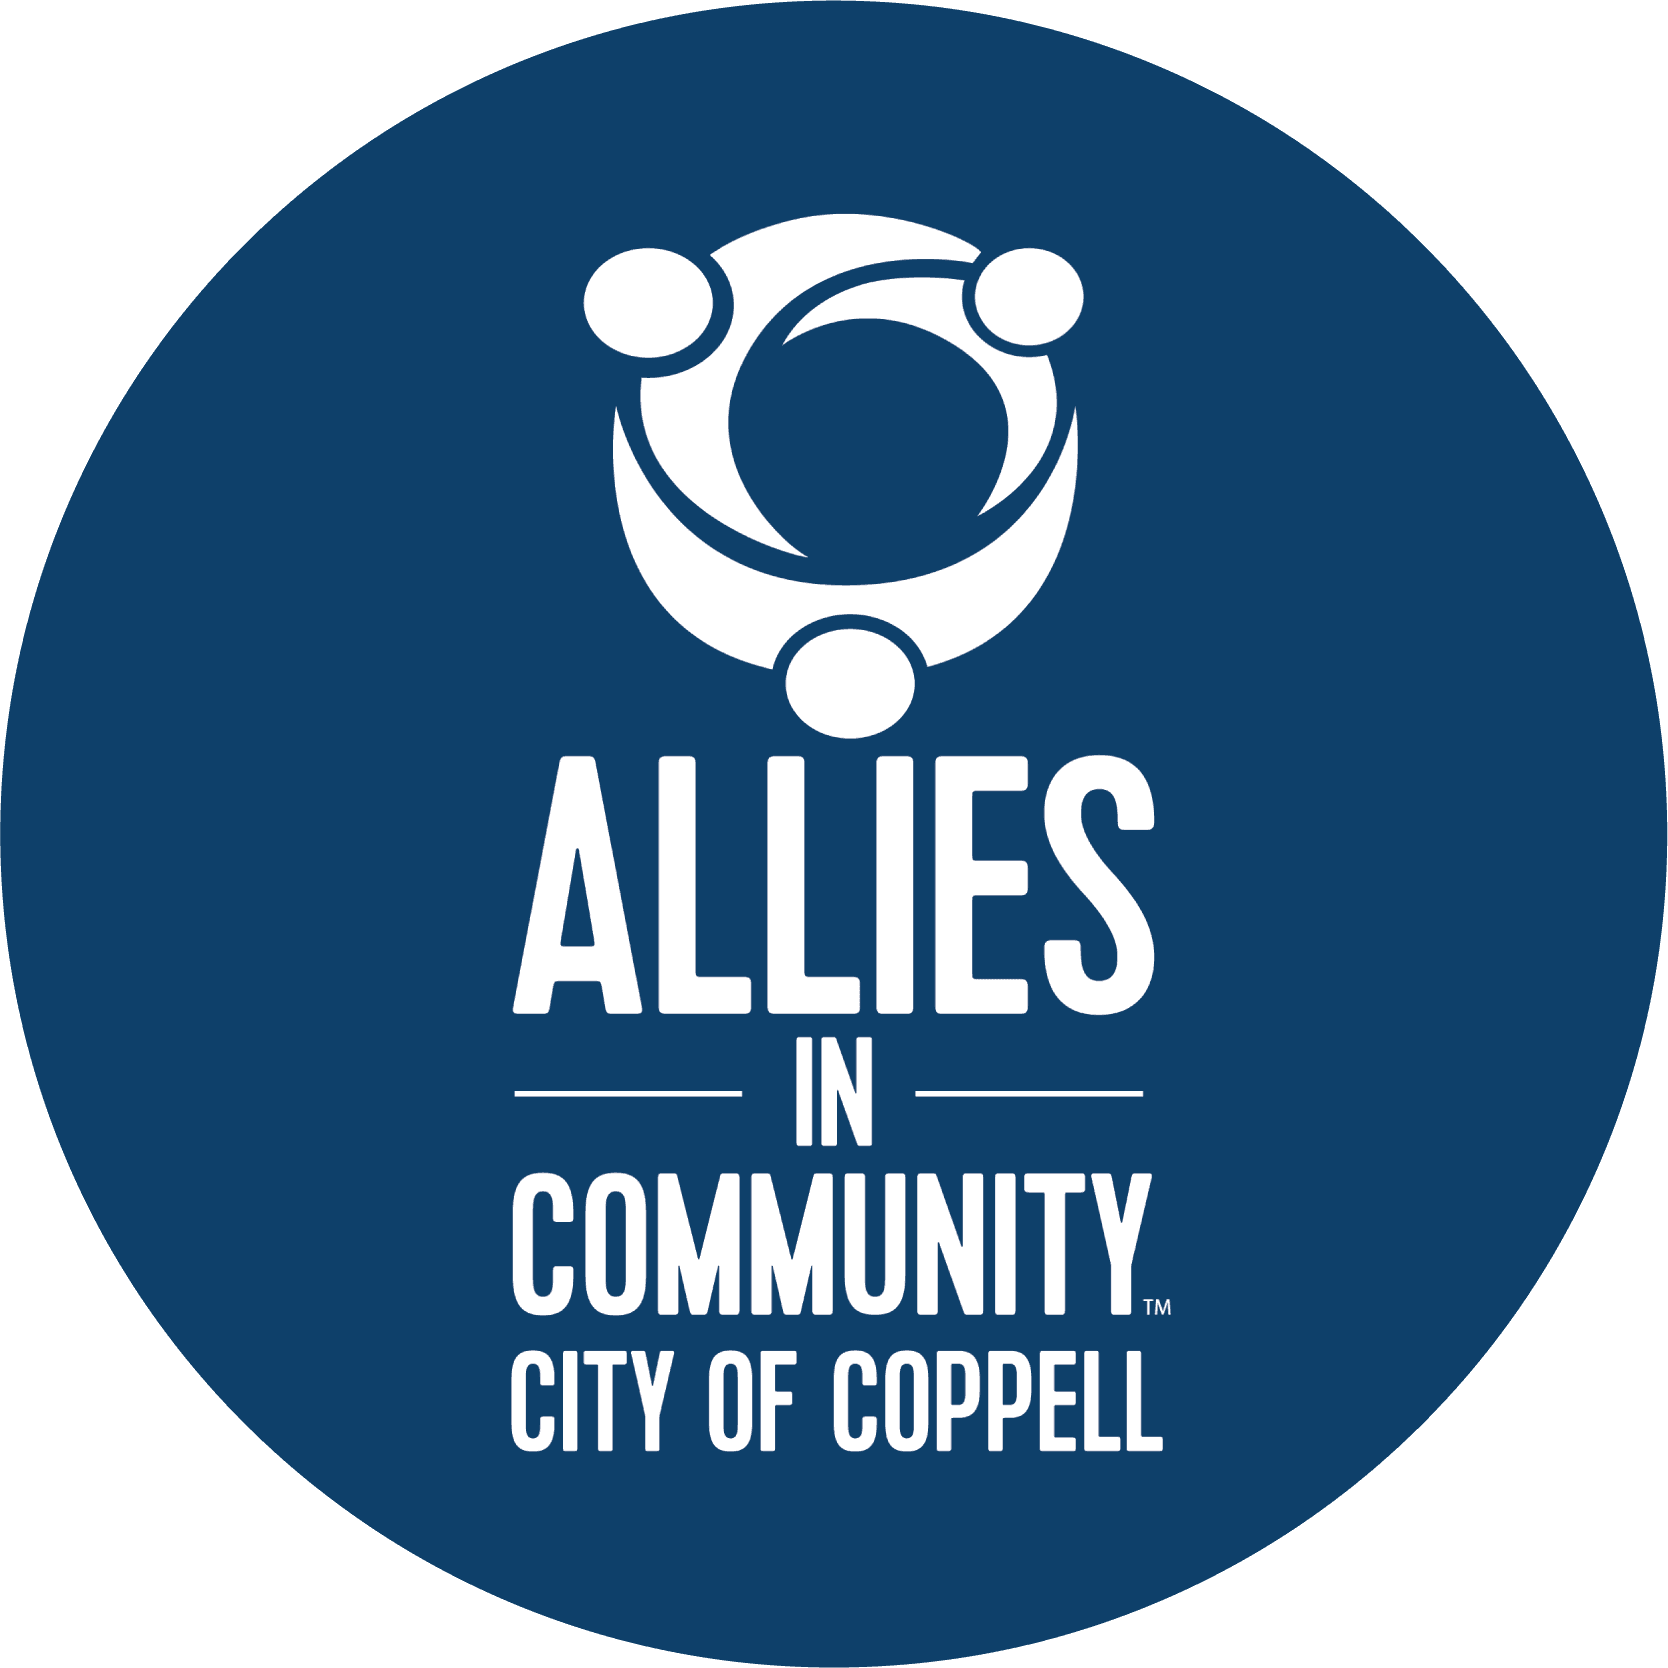 Allies in Community - City of Coppell